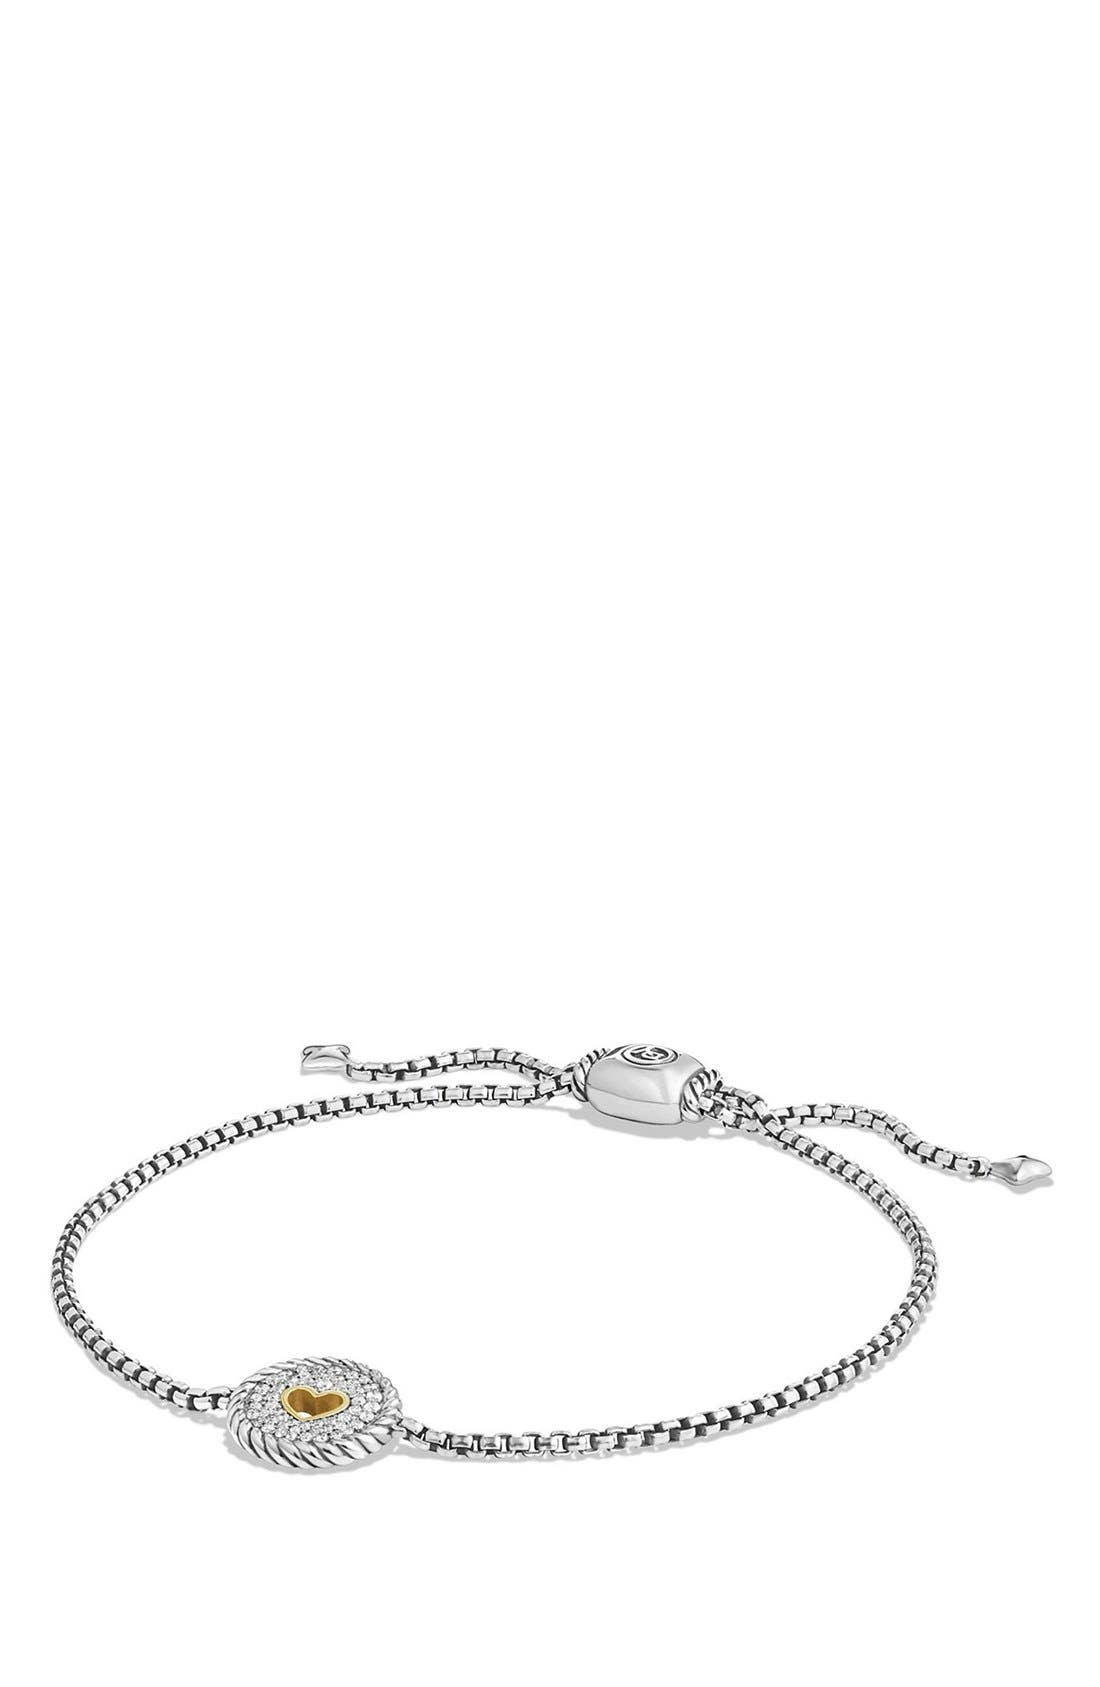 Main Image - David Yurman 'Cable Collectibles' Heart Station Bracelet with Diamonds